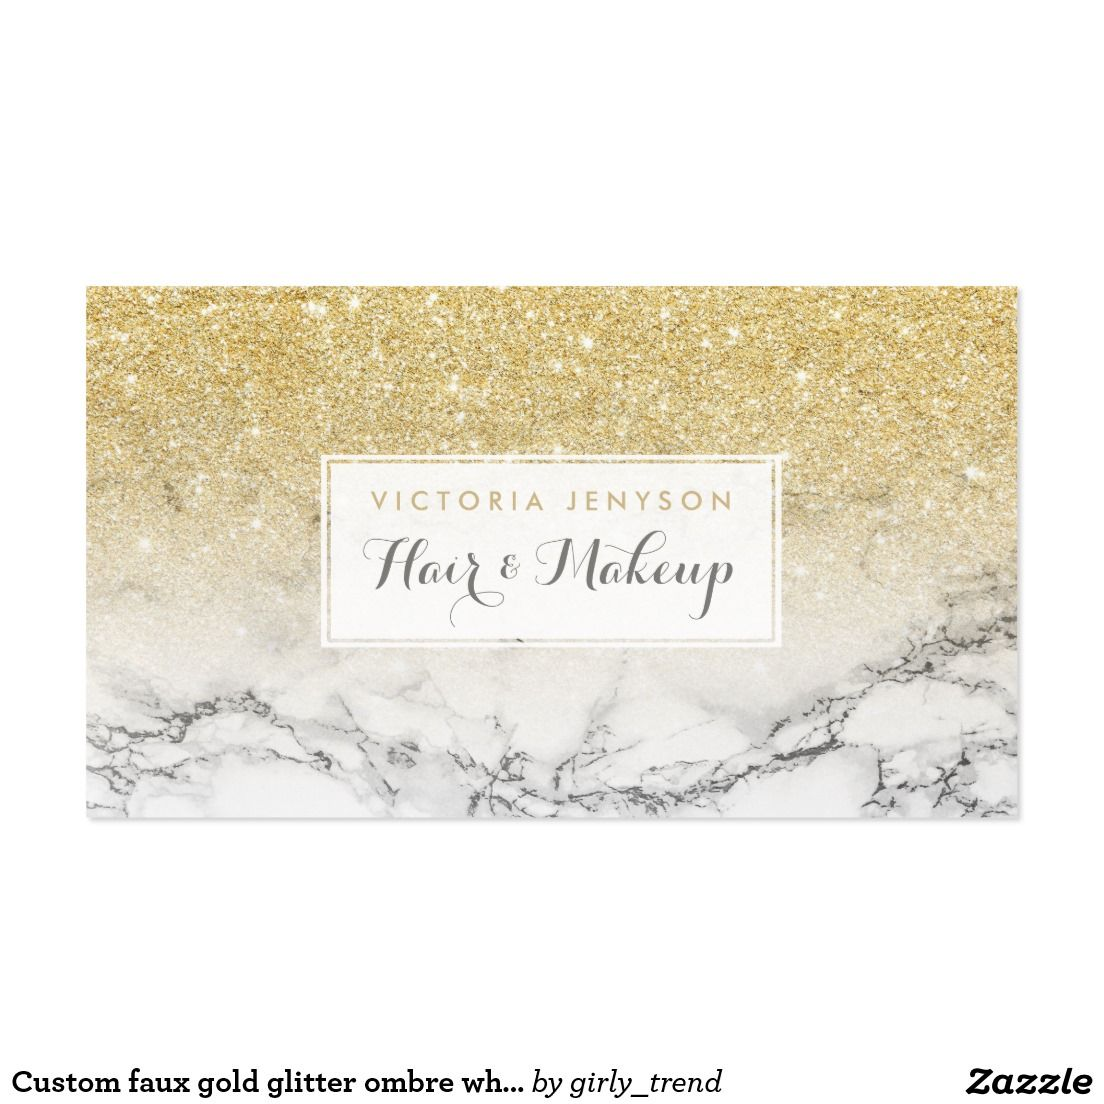 Custom faux gold glitter ombre white marble makeup business card custom faux gold glitter ombre white marble makeup business card reheart Image collections